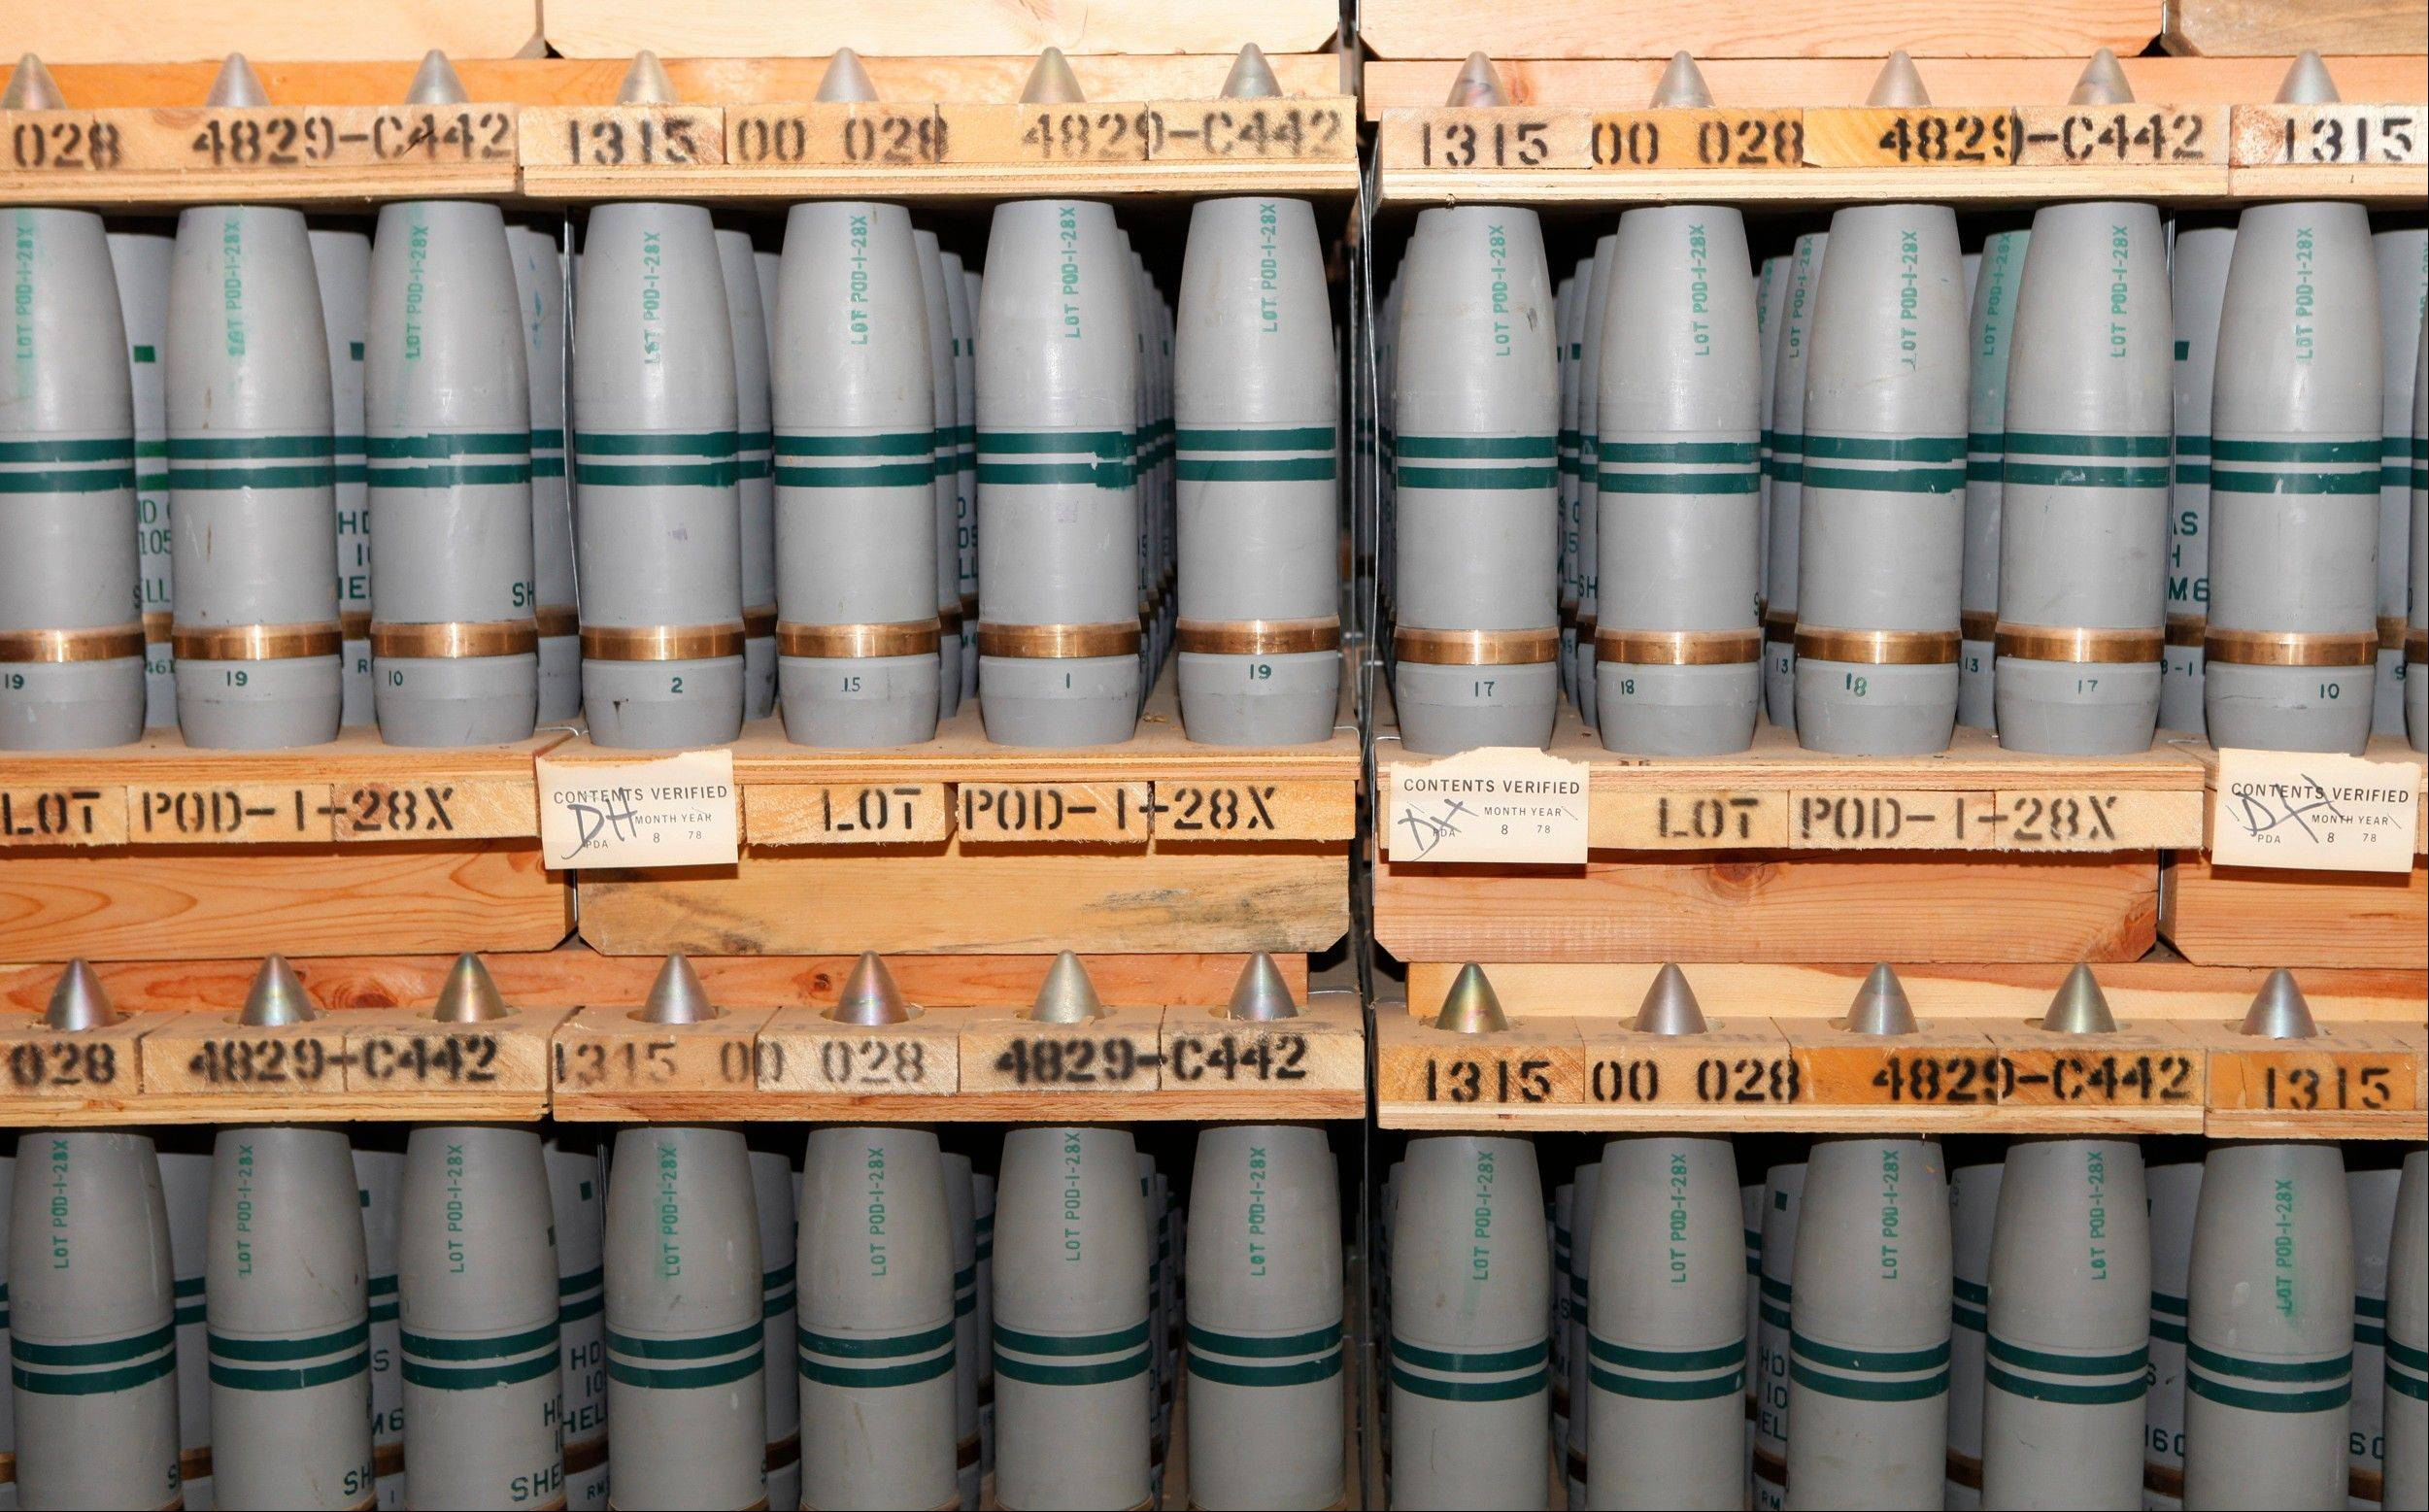 Mustard gas agents are stored in these 105mm shells in a bunker at the Army's Pueblo Chemical Storage facility in Pueblo, Colo. Three decades after the United States started destroying its own chemical weapons, the nationís stockpile stands at more than 3,000 tons.